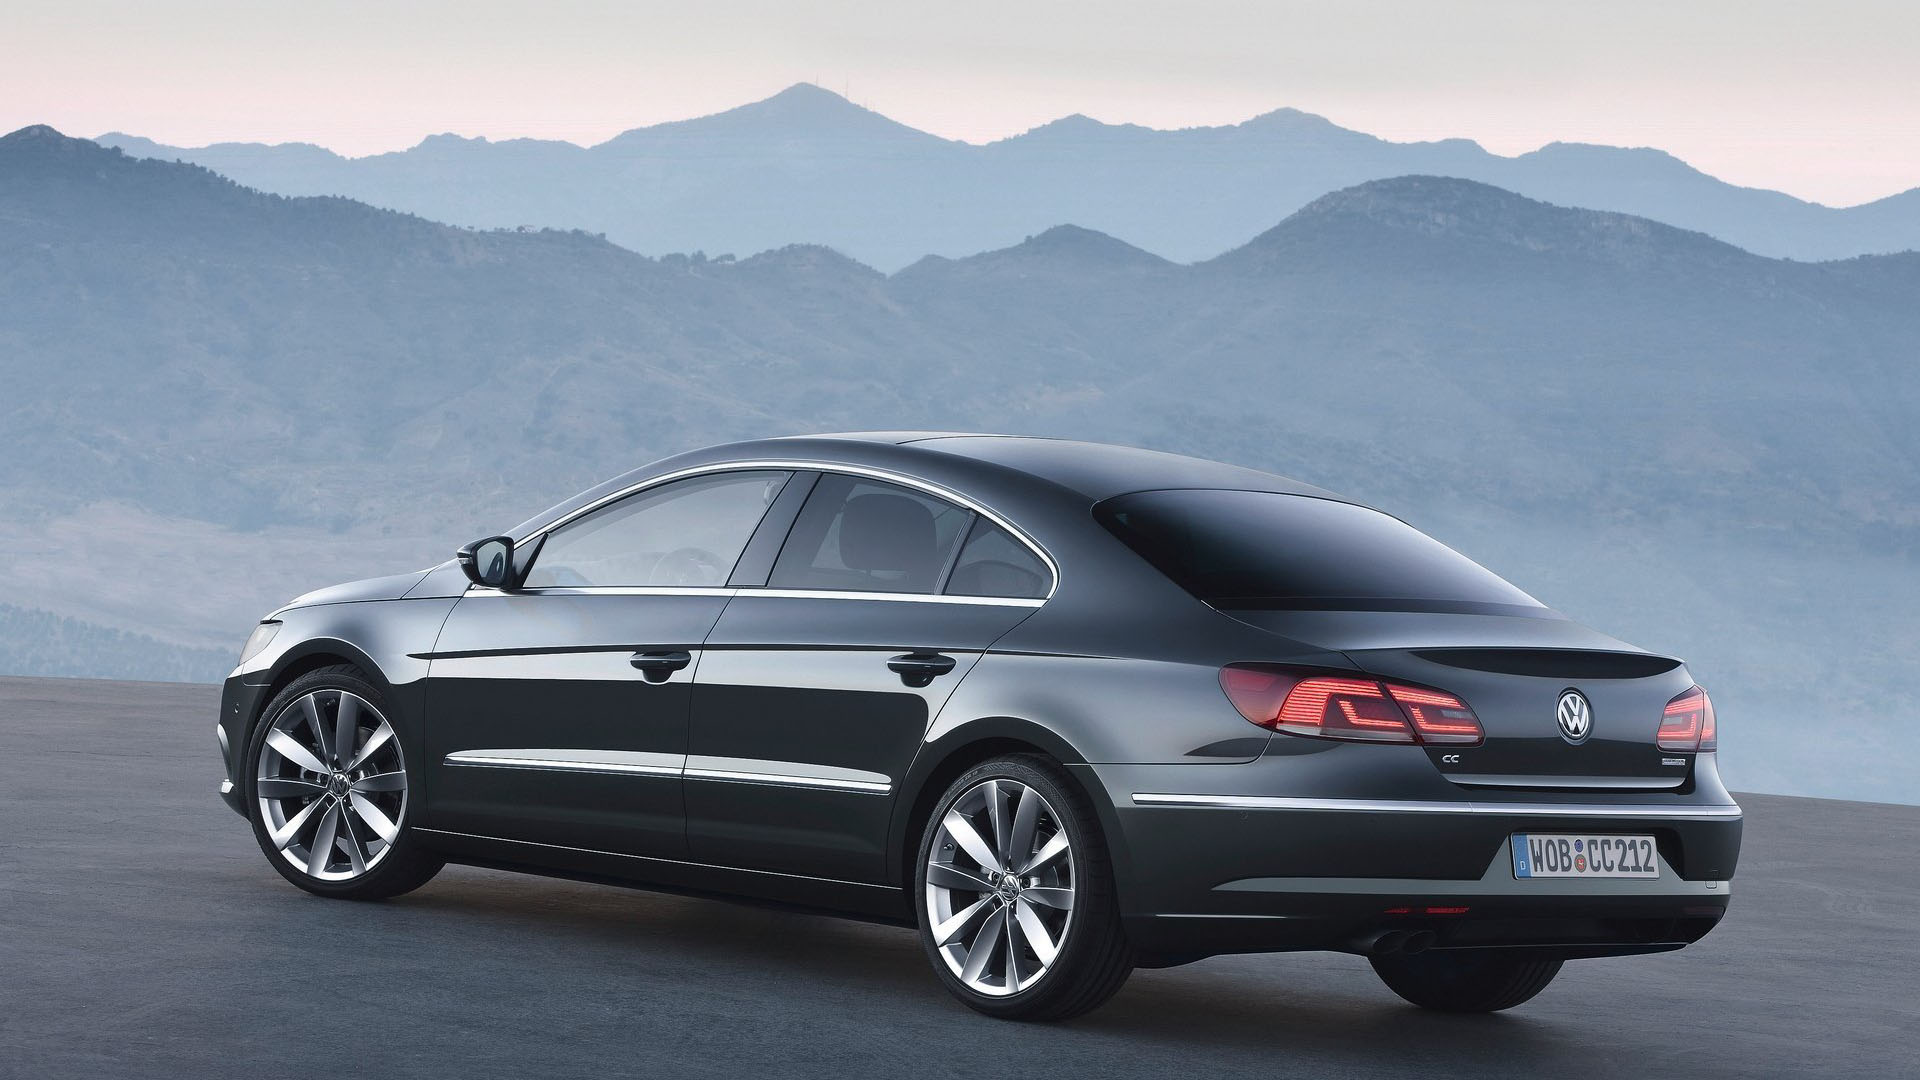 Volkswagen Passat Cc 2014 Review Amazing Pictures And